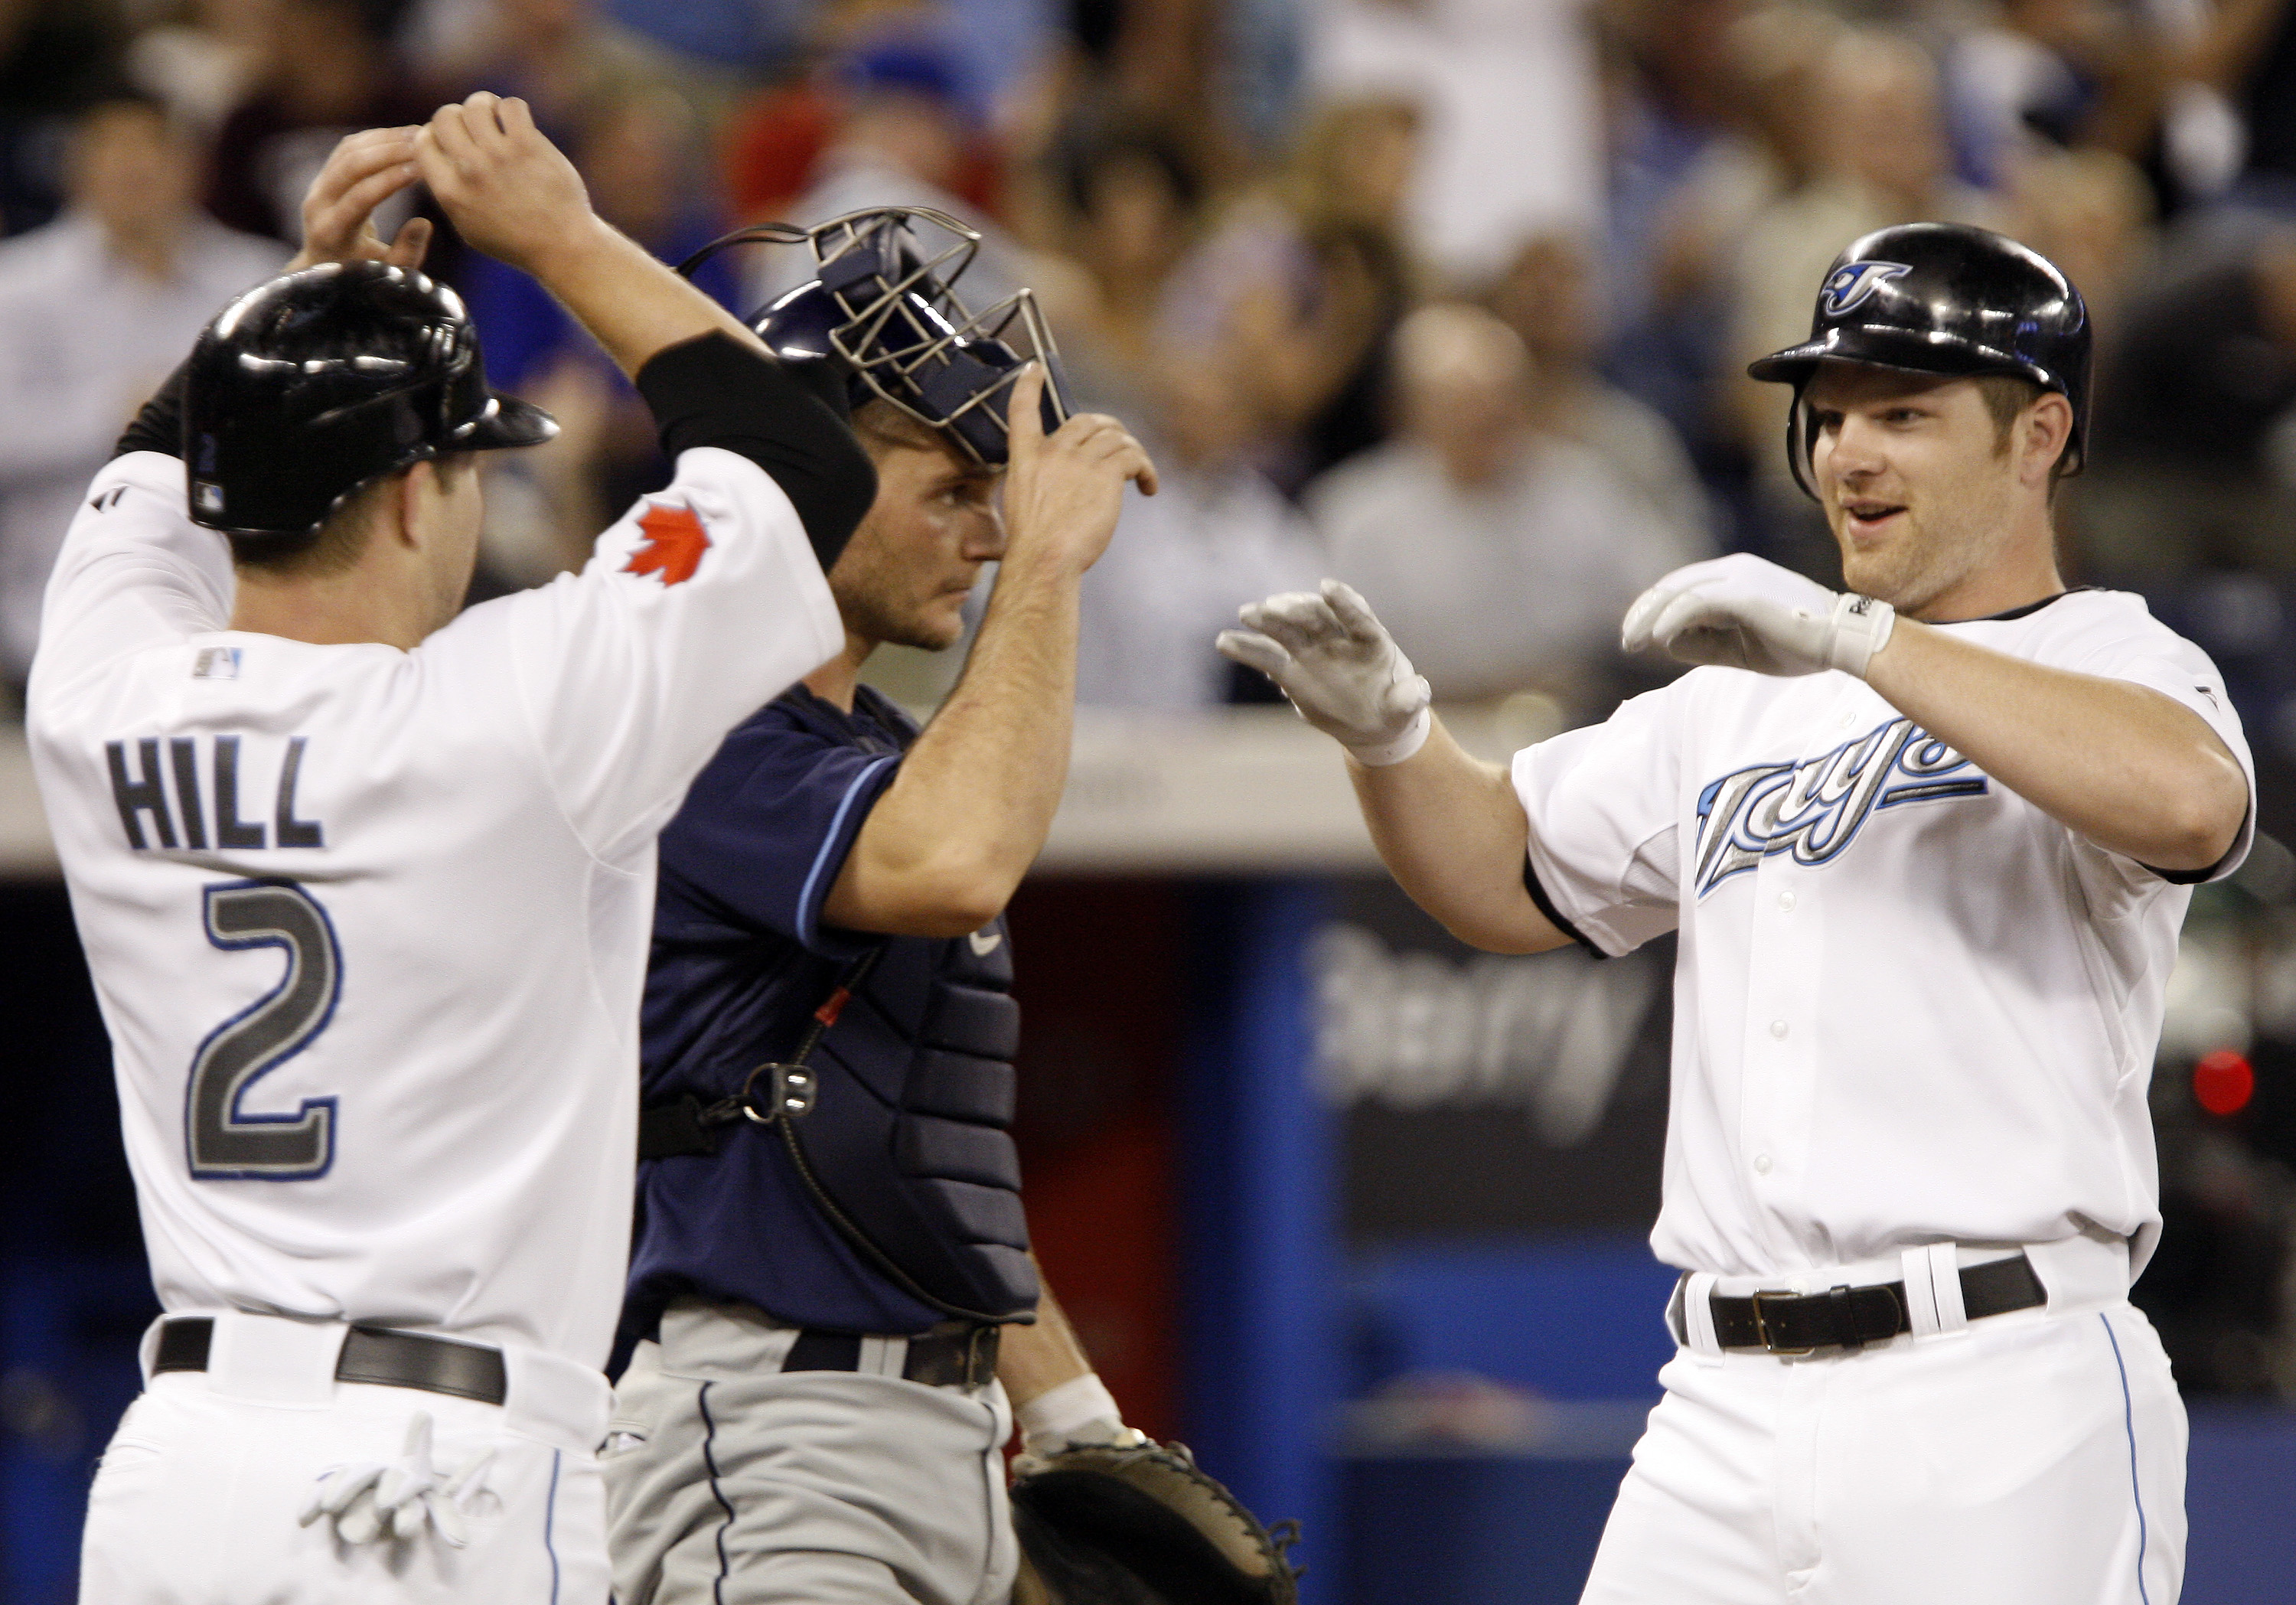 TORONTO - MAY 31: Adam Lind #26 and Aaron Hill #2 of the Toronto Blue Jays celebrate a two-run home run by Lind against the Tampa Bay Rays at the Rogers Centre during an MLB game May 31, 2010 in Toronto, Ontario, Canada. (Photo by Abelimages/Getty Images)